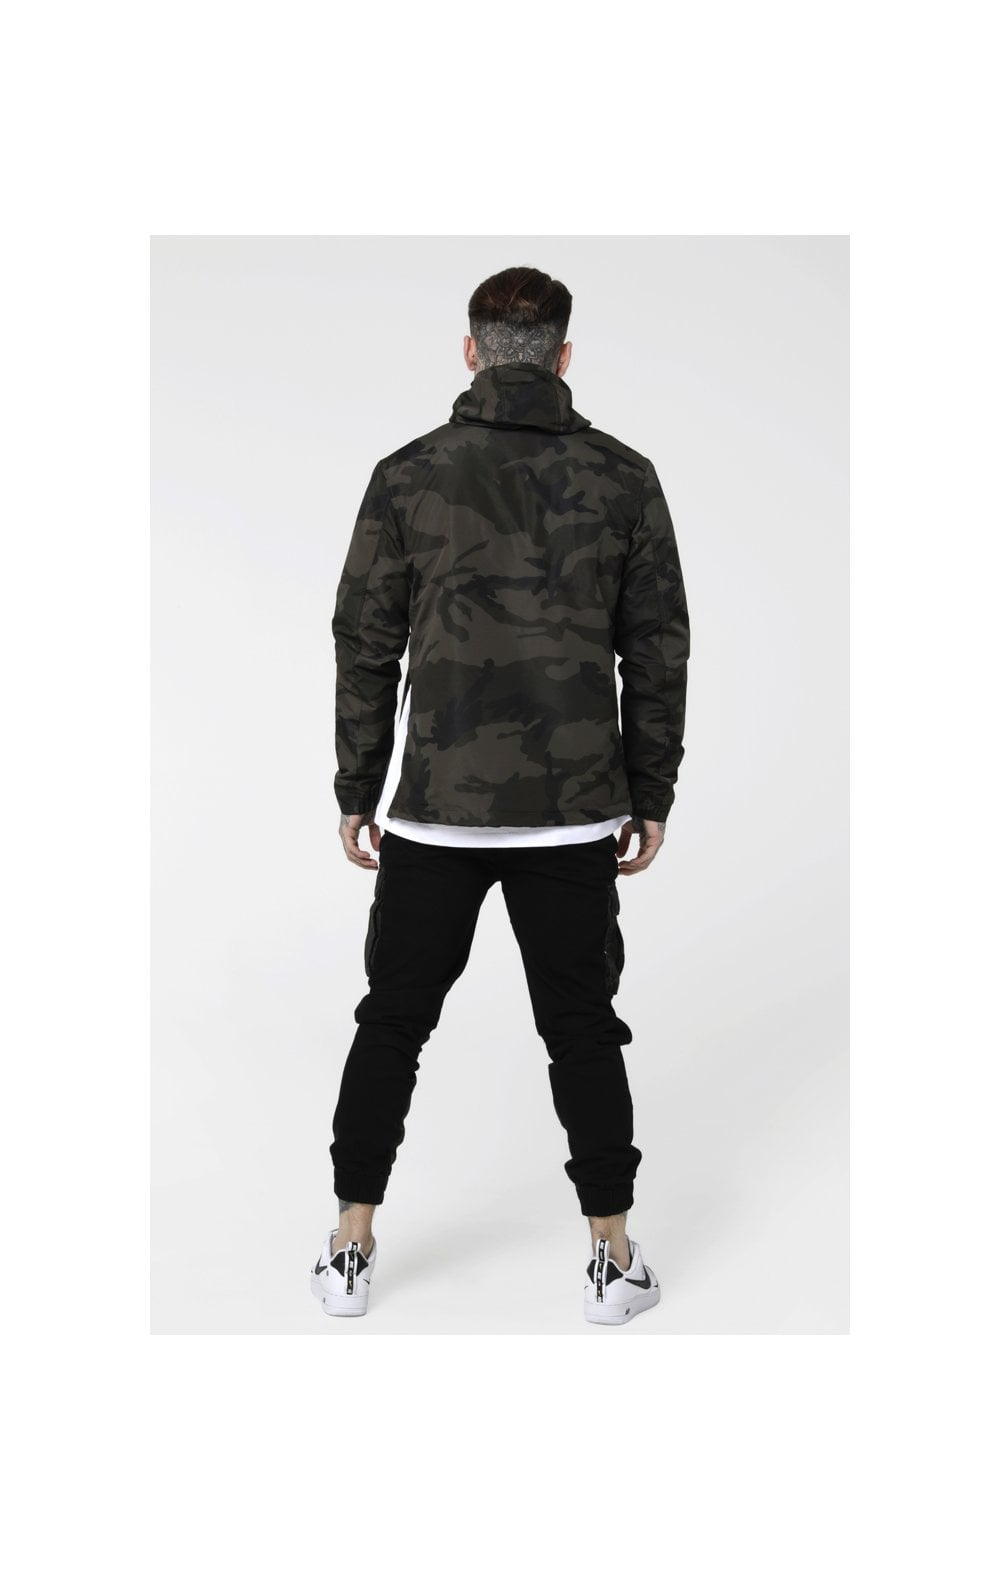 Load image into Gallery viewer, SikSilk Energy Windbreaker – Woodland Camo (6)